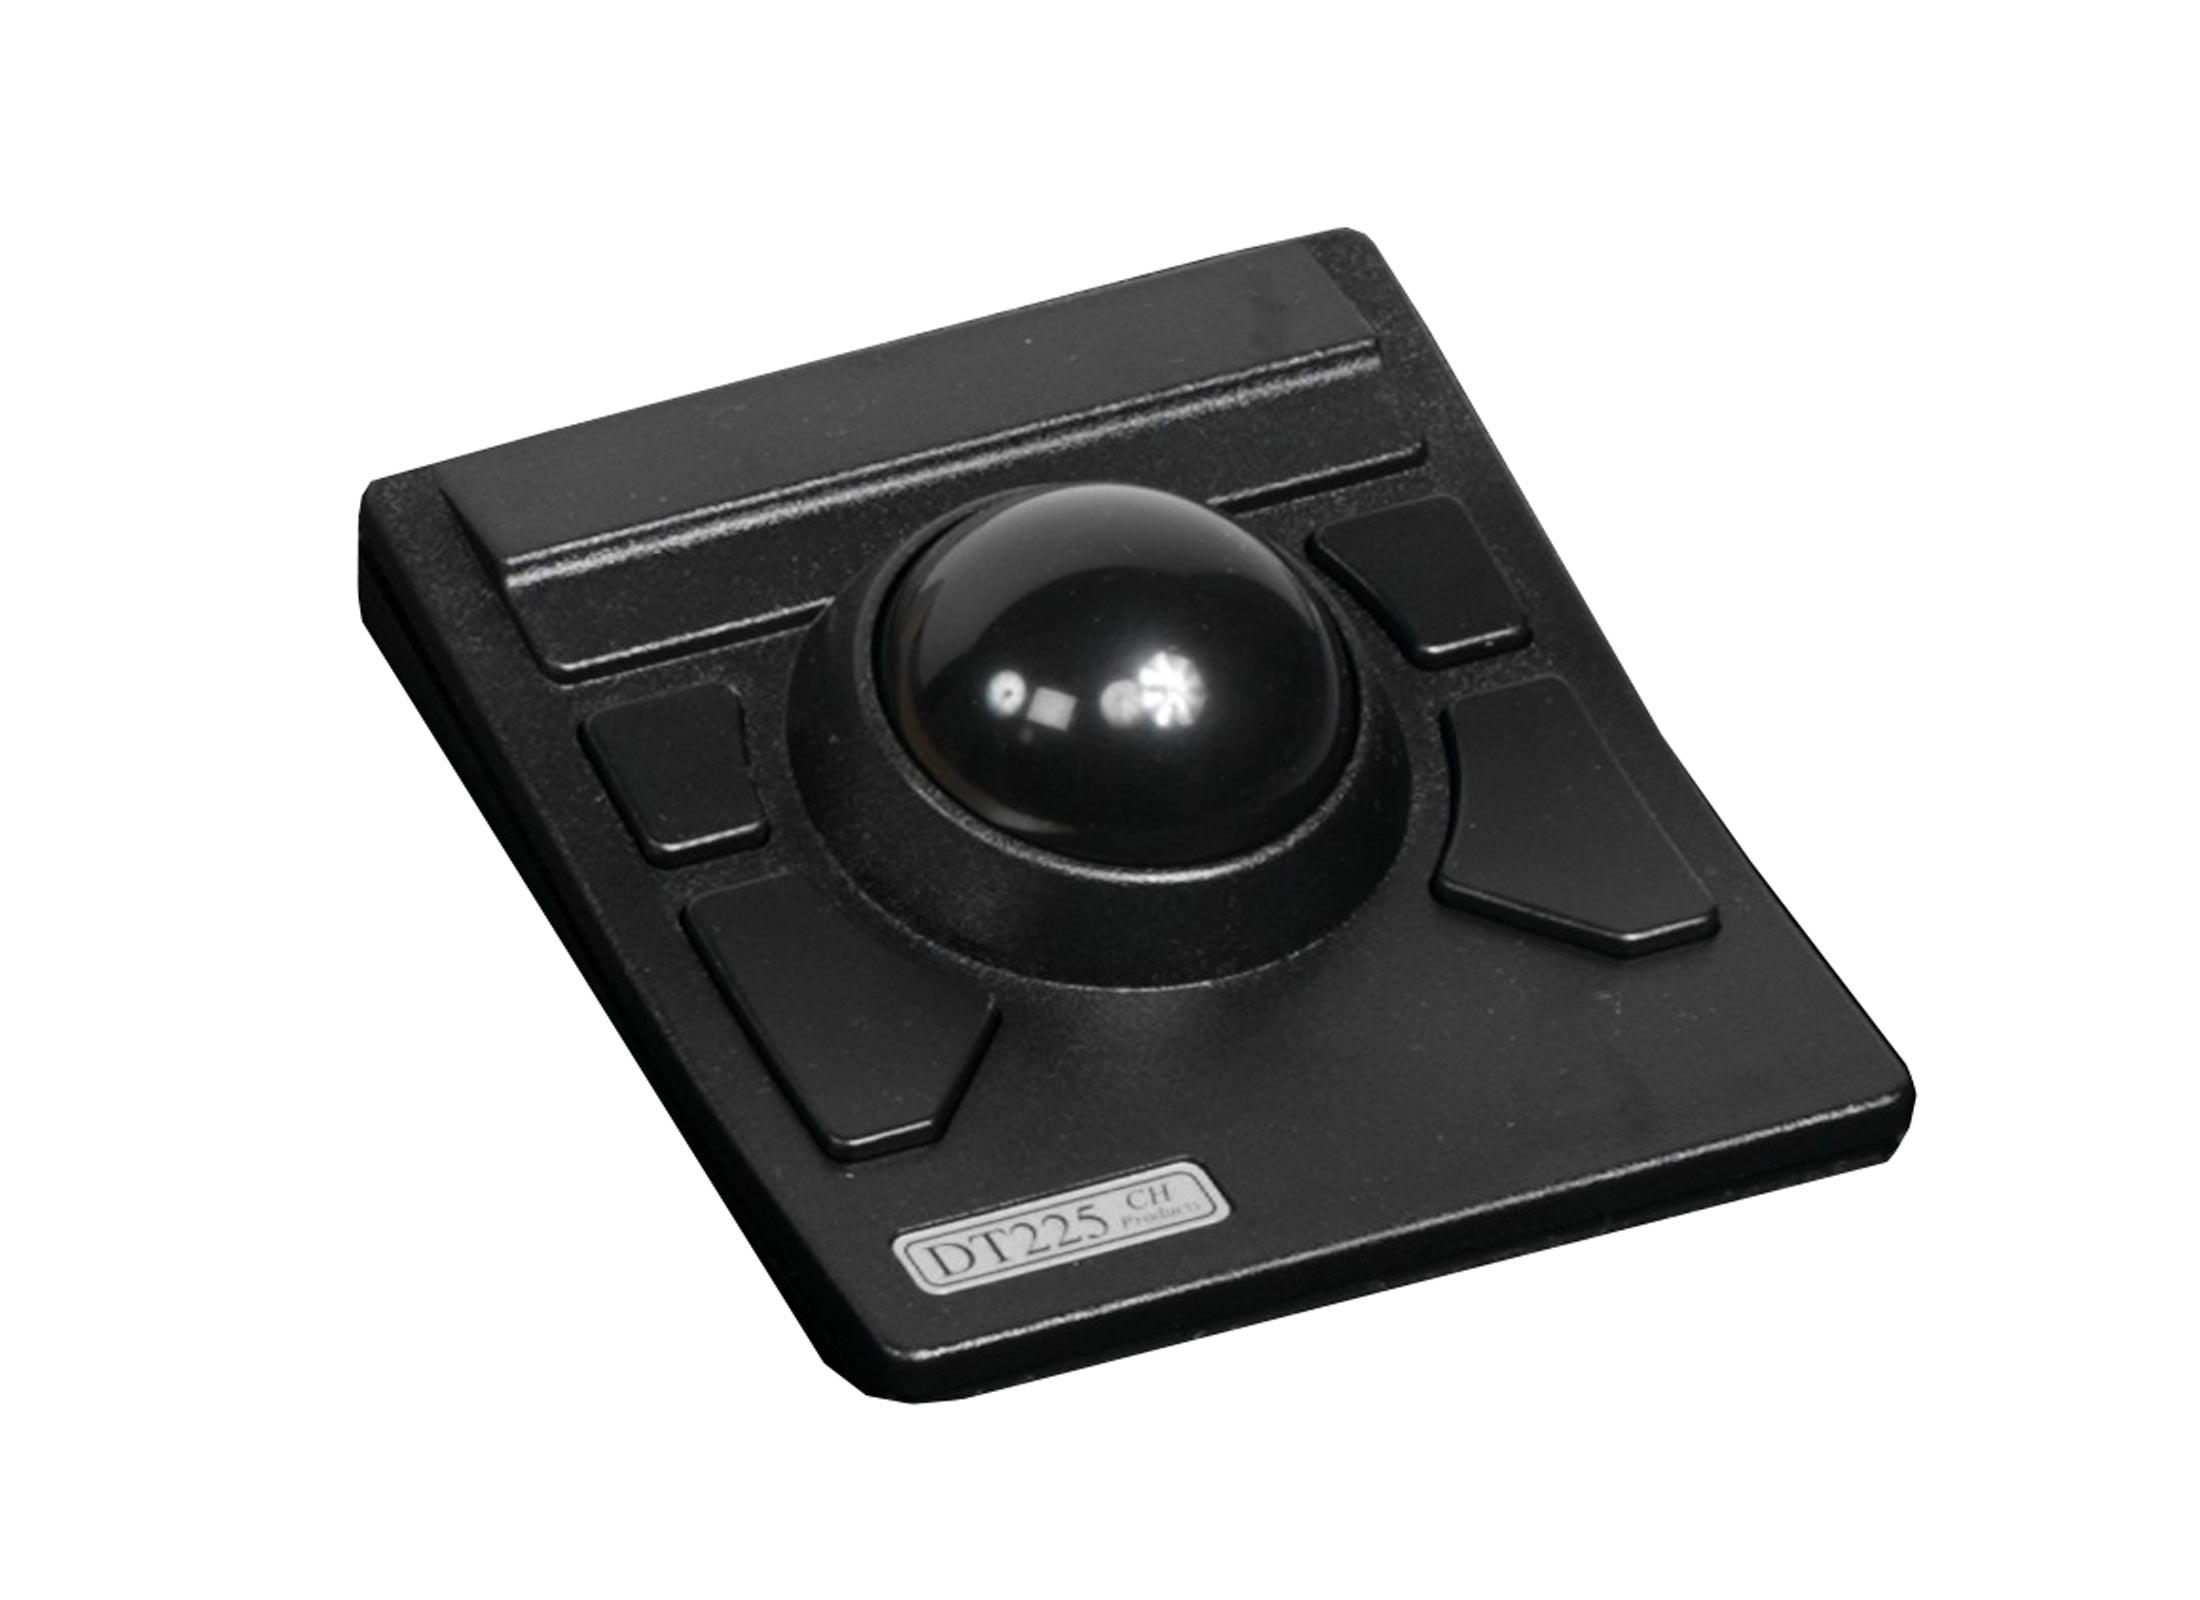 Jb Lighting Licon 1x Occasion Jb Lighting Licon Trackball Günstig Online Kaufen Bei Huss